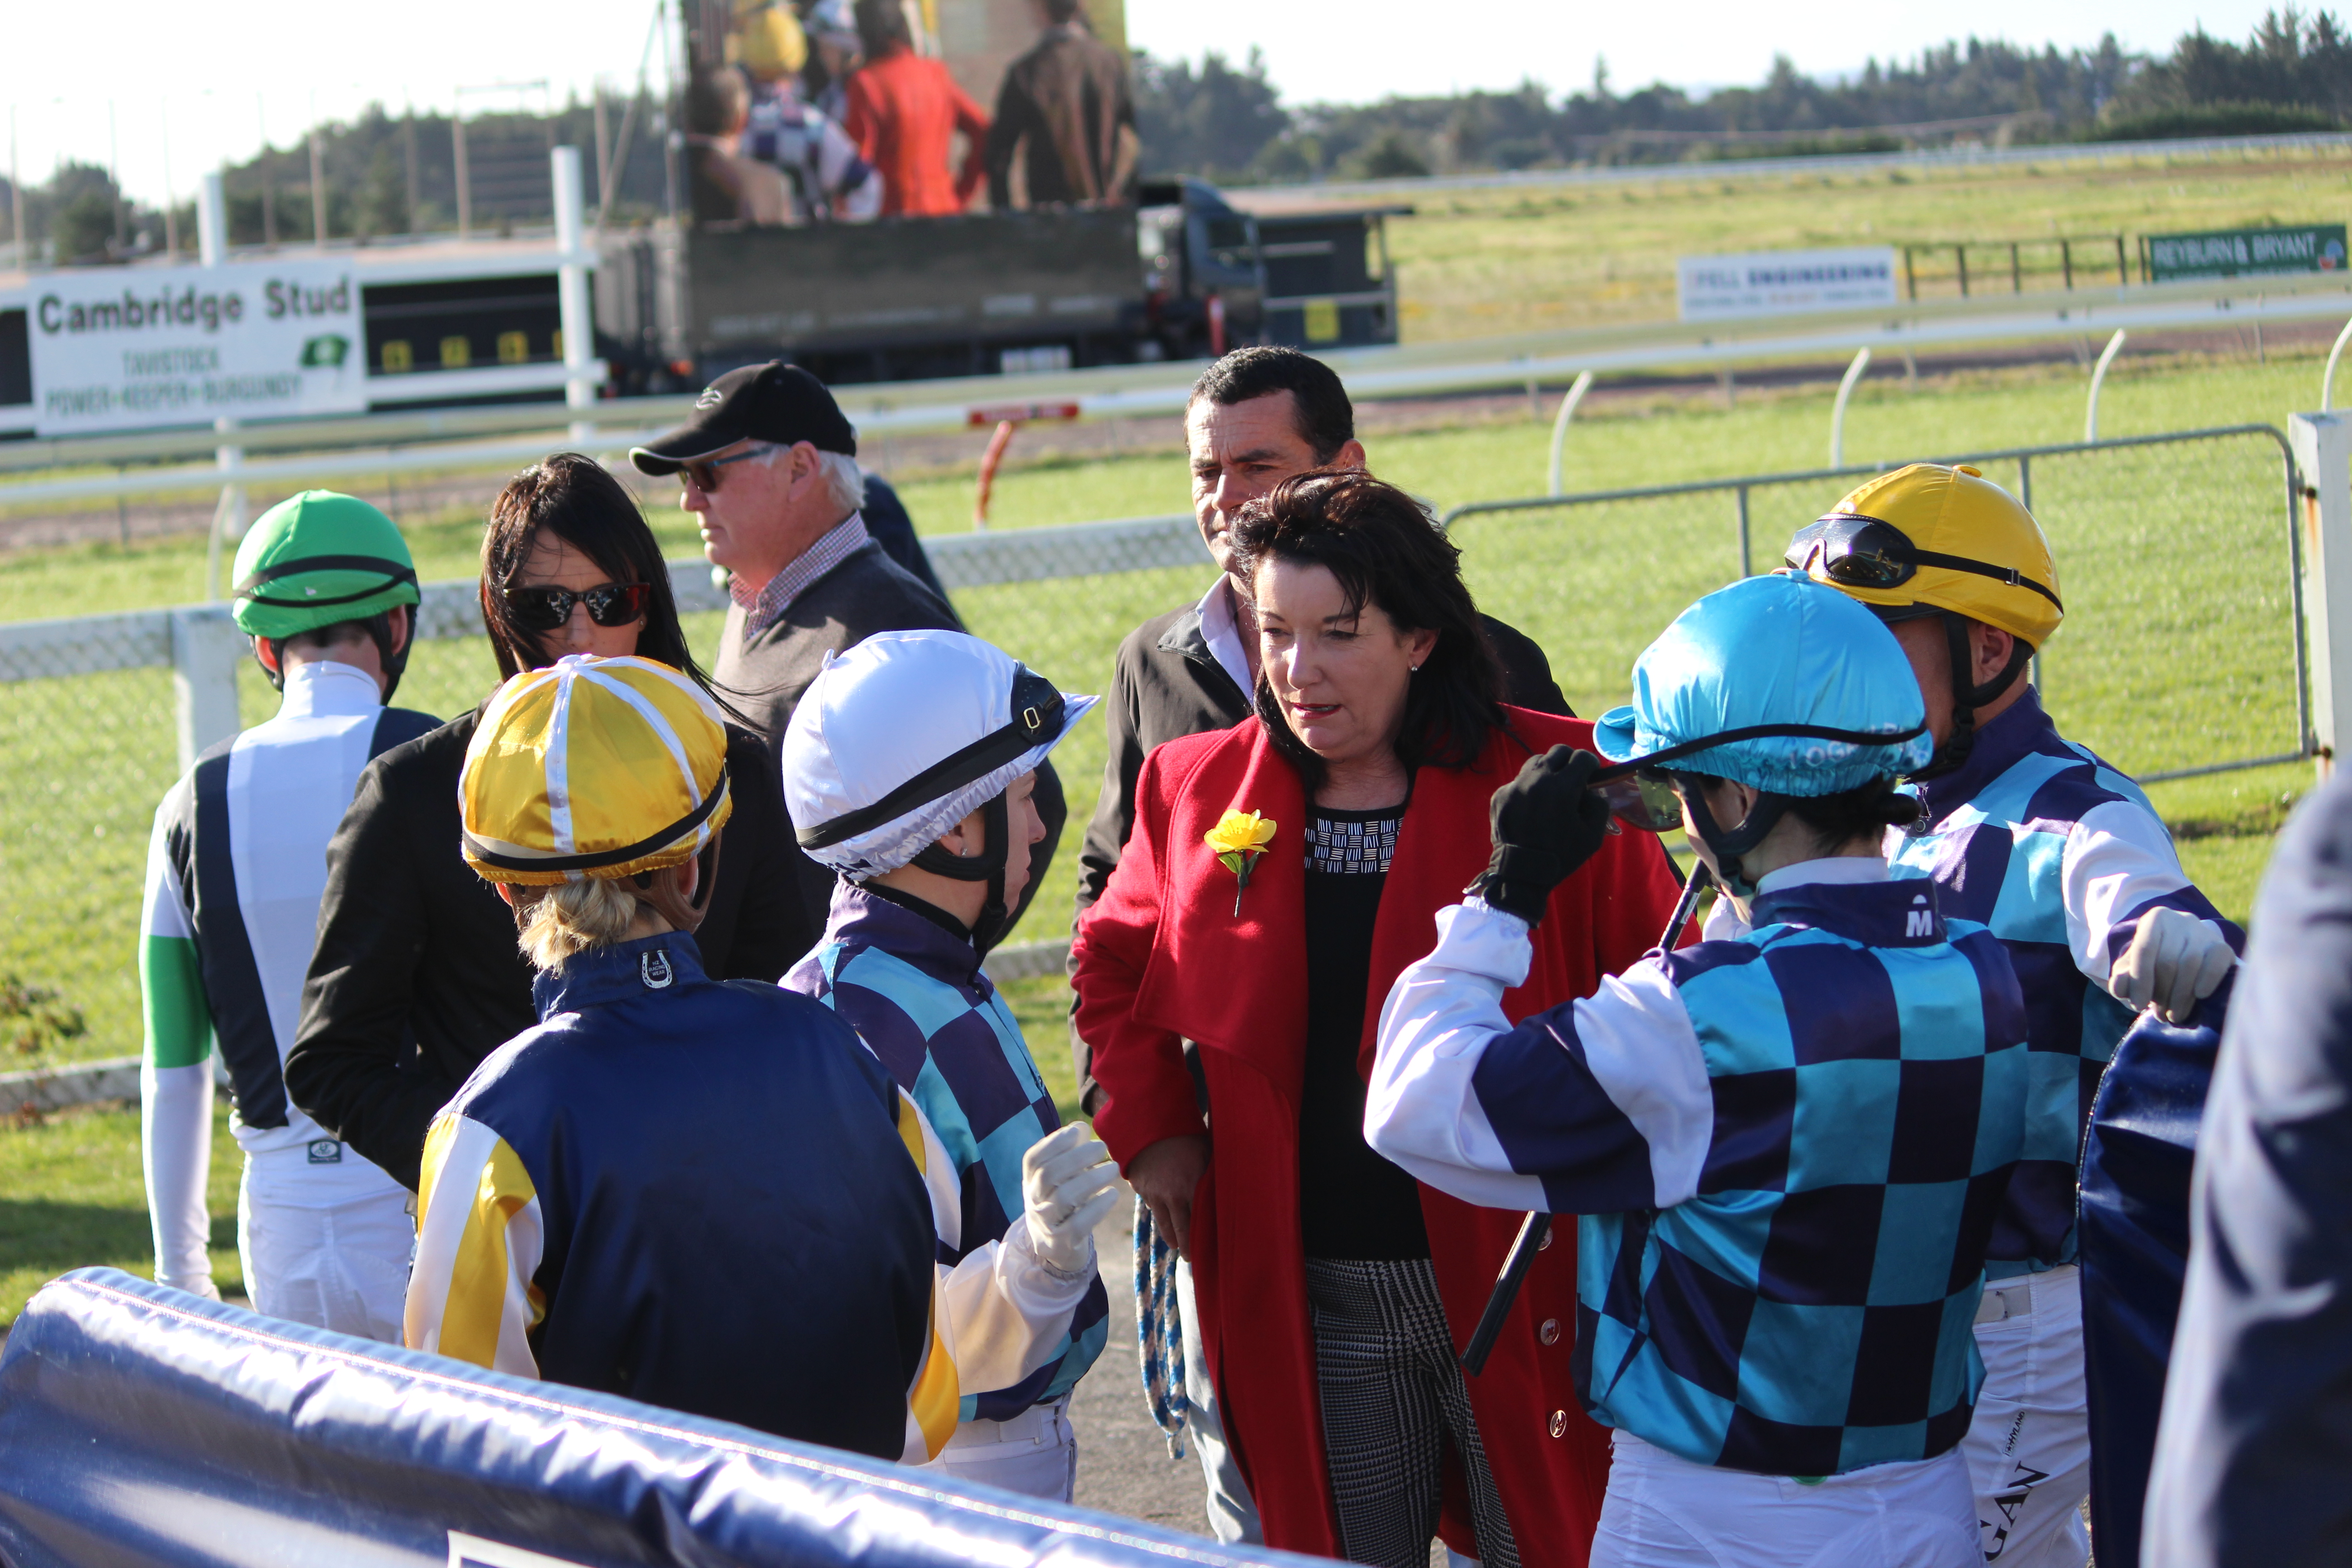 LOGAN RACING STABLES HAVE 4 RUNNERS AT ELLERSLIE ON SATURDAY 24TH OCT AND 4 AT TE RAPA ON MONDAY 26TH OCT